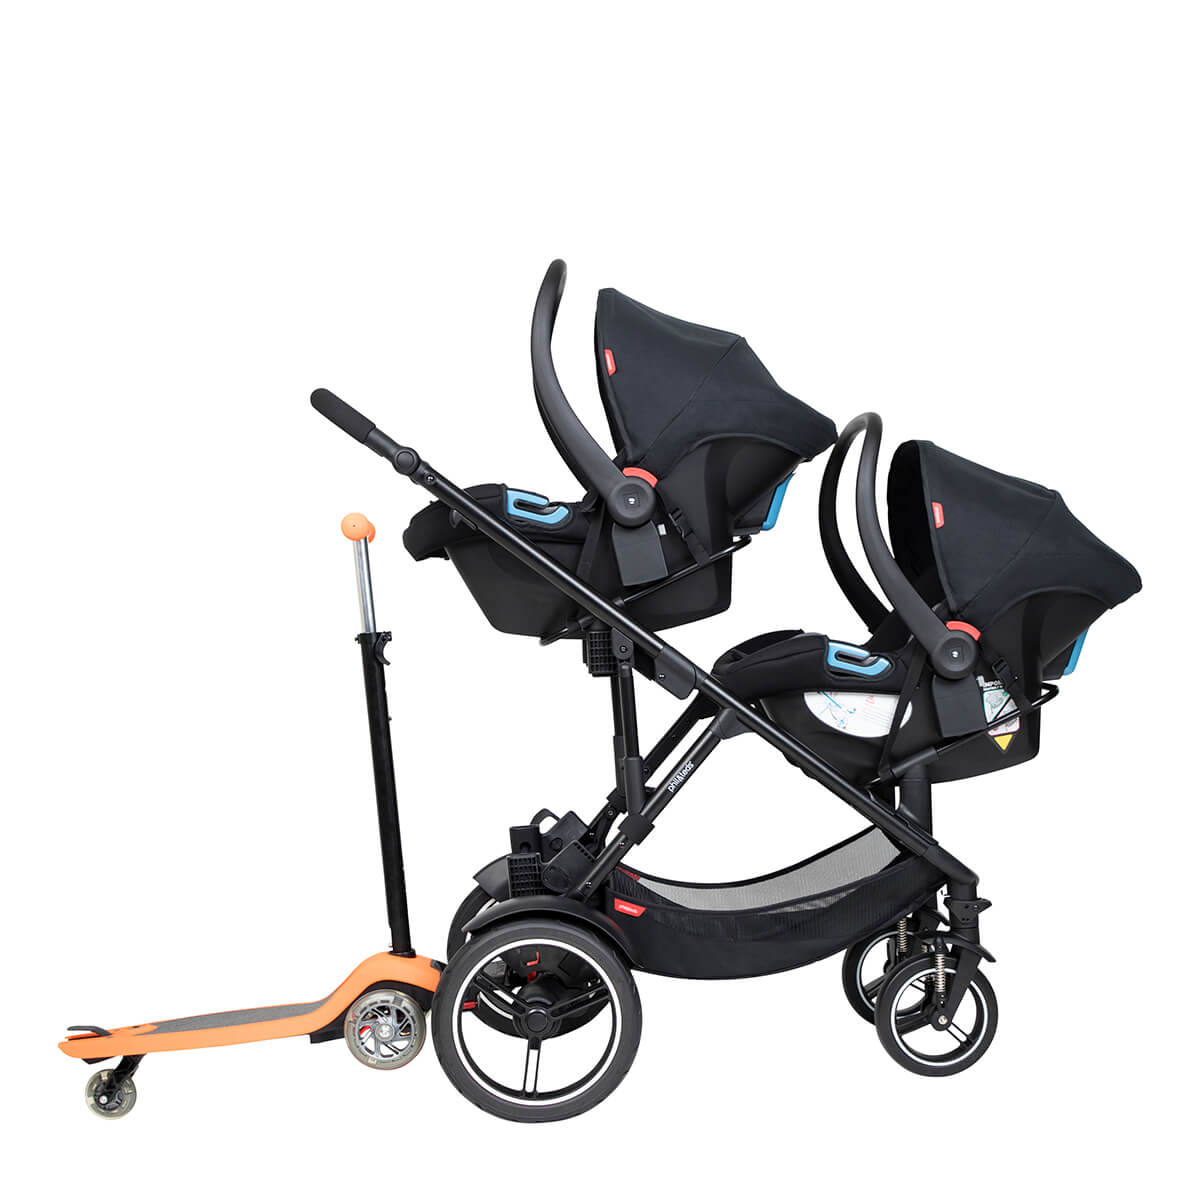 https://cdn.accentuate.io/4509912891469/19466498146498/philteds-voyager-buggy-with-double-travel-systems-and-freerider-stroller-board-in-the-rear-v1626485556409.jpg?1200x1200